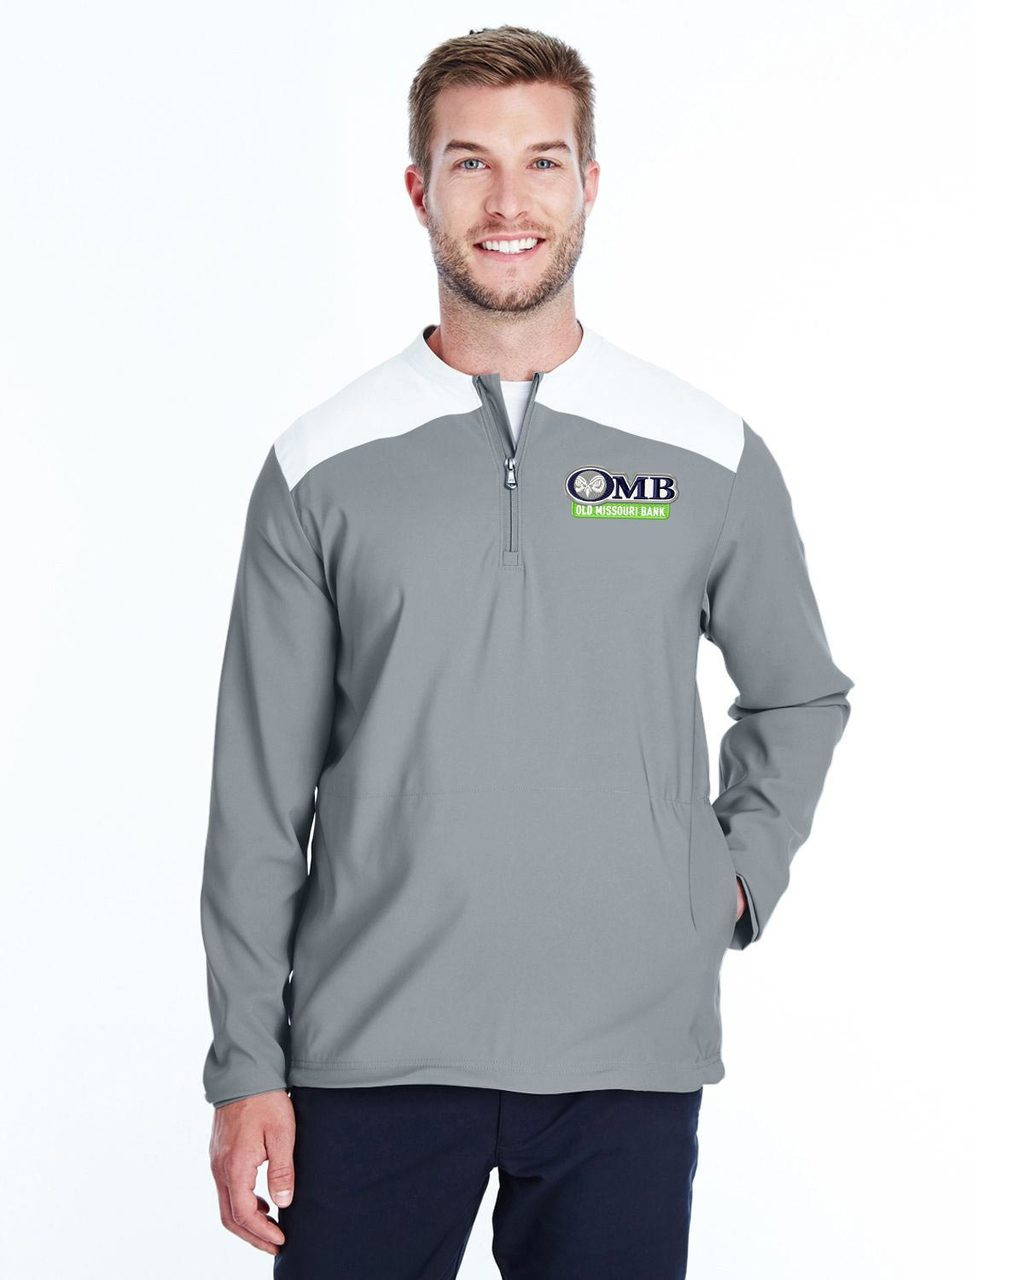 390f5c188 ... OMB Mens UNDER ARMOUR Corporate Triumph Cage Quarter Zip Pullover -  NEW! Loading zoom